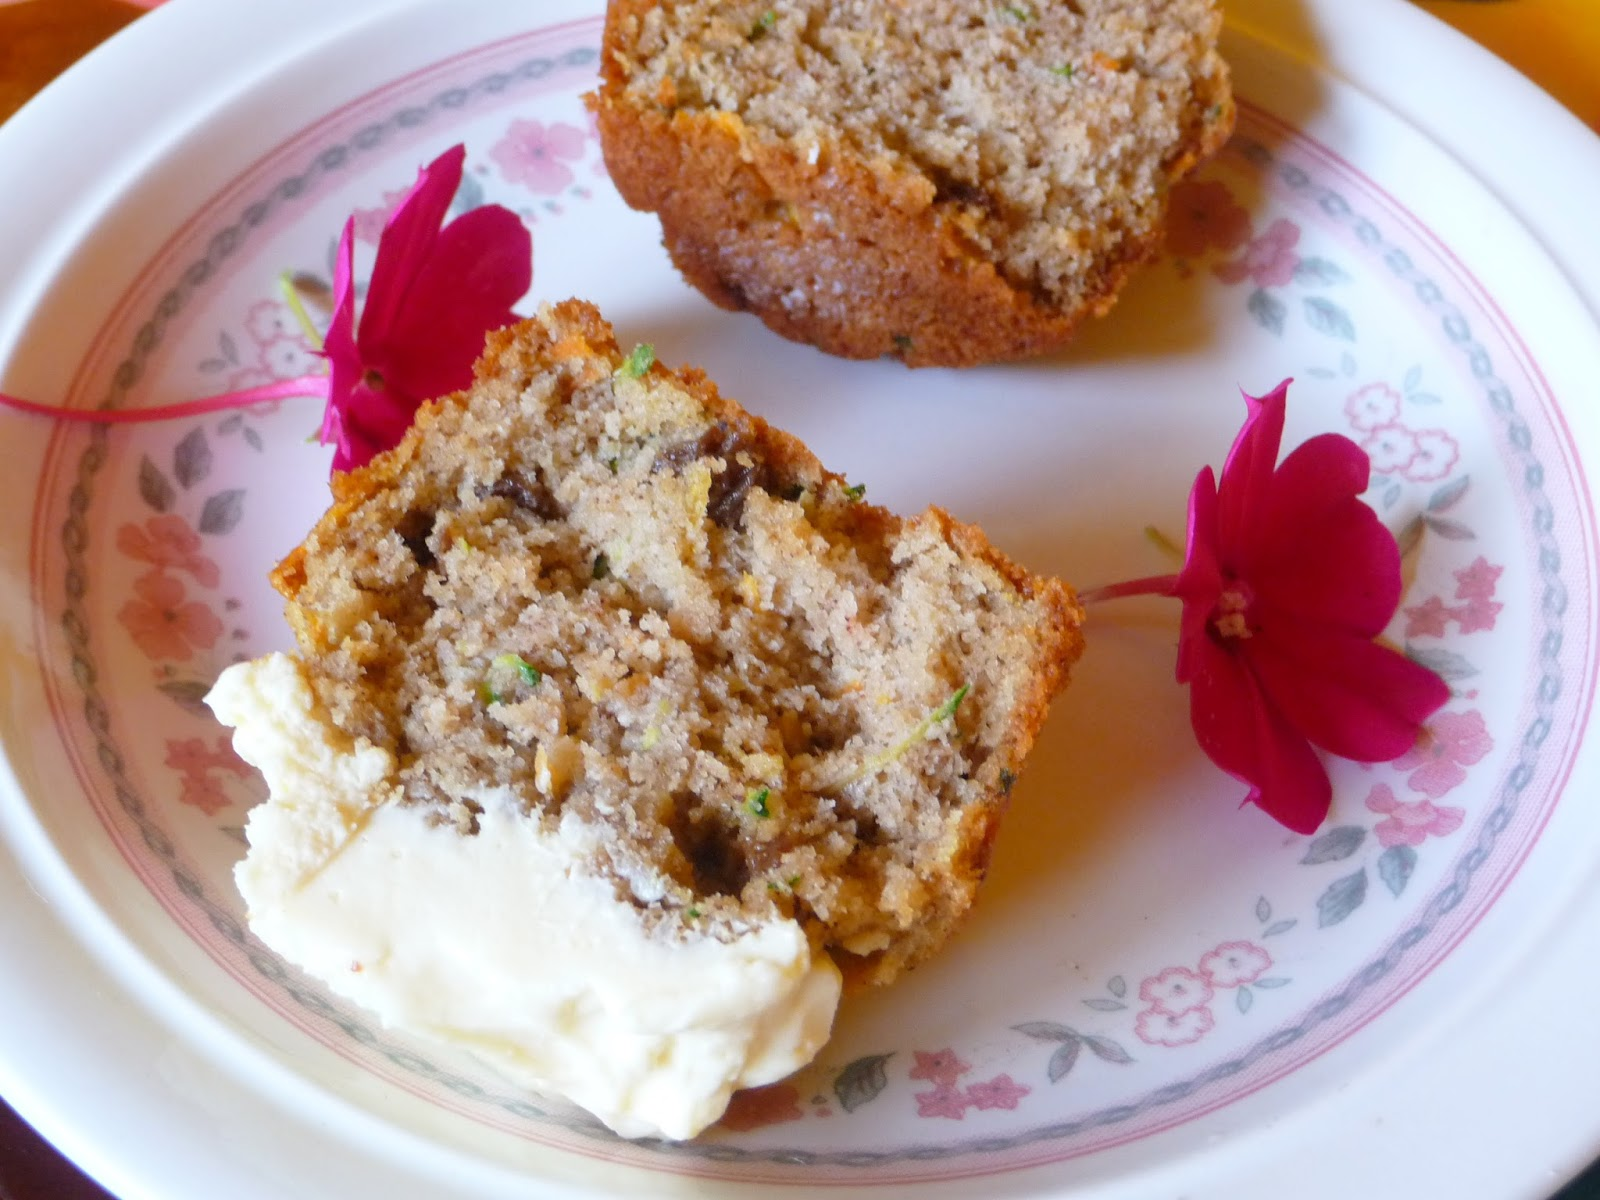 Splendid Low Carbing Carrot Zucchini Cake Muffins With Cream Cheese Frosting